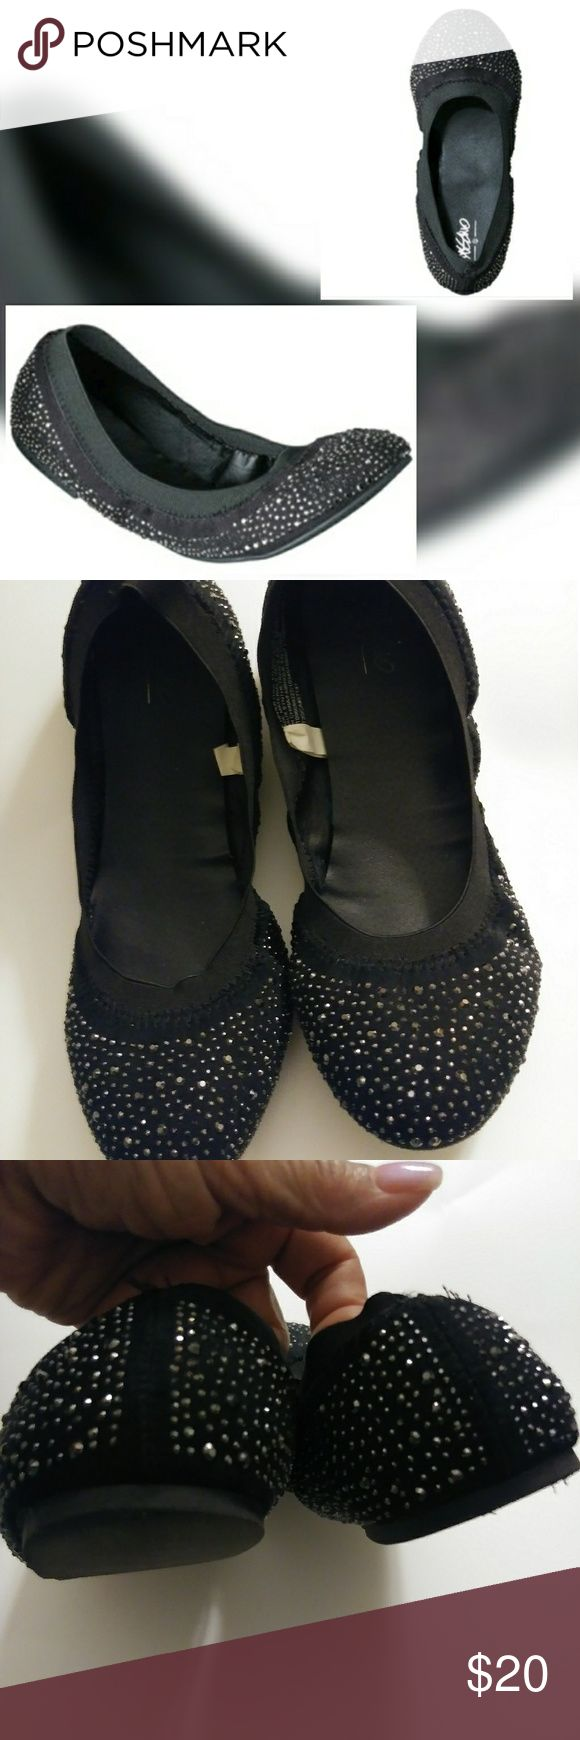 MOSSIMO VANESSA FLATS Mossimo Vanessa scrunchi flats withvsmall silver studs. Super cute & comfortable. Mossimo Supply Co Shoes Flats & Loafers